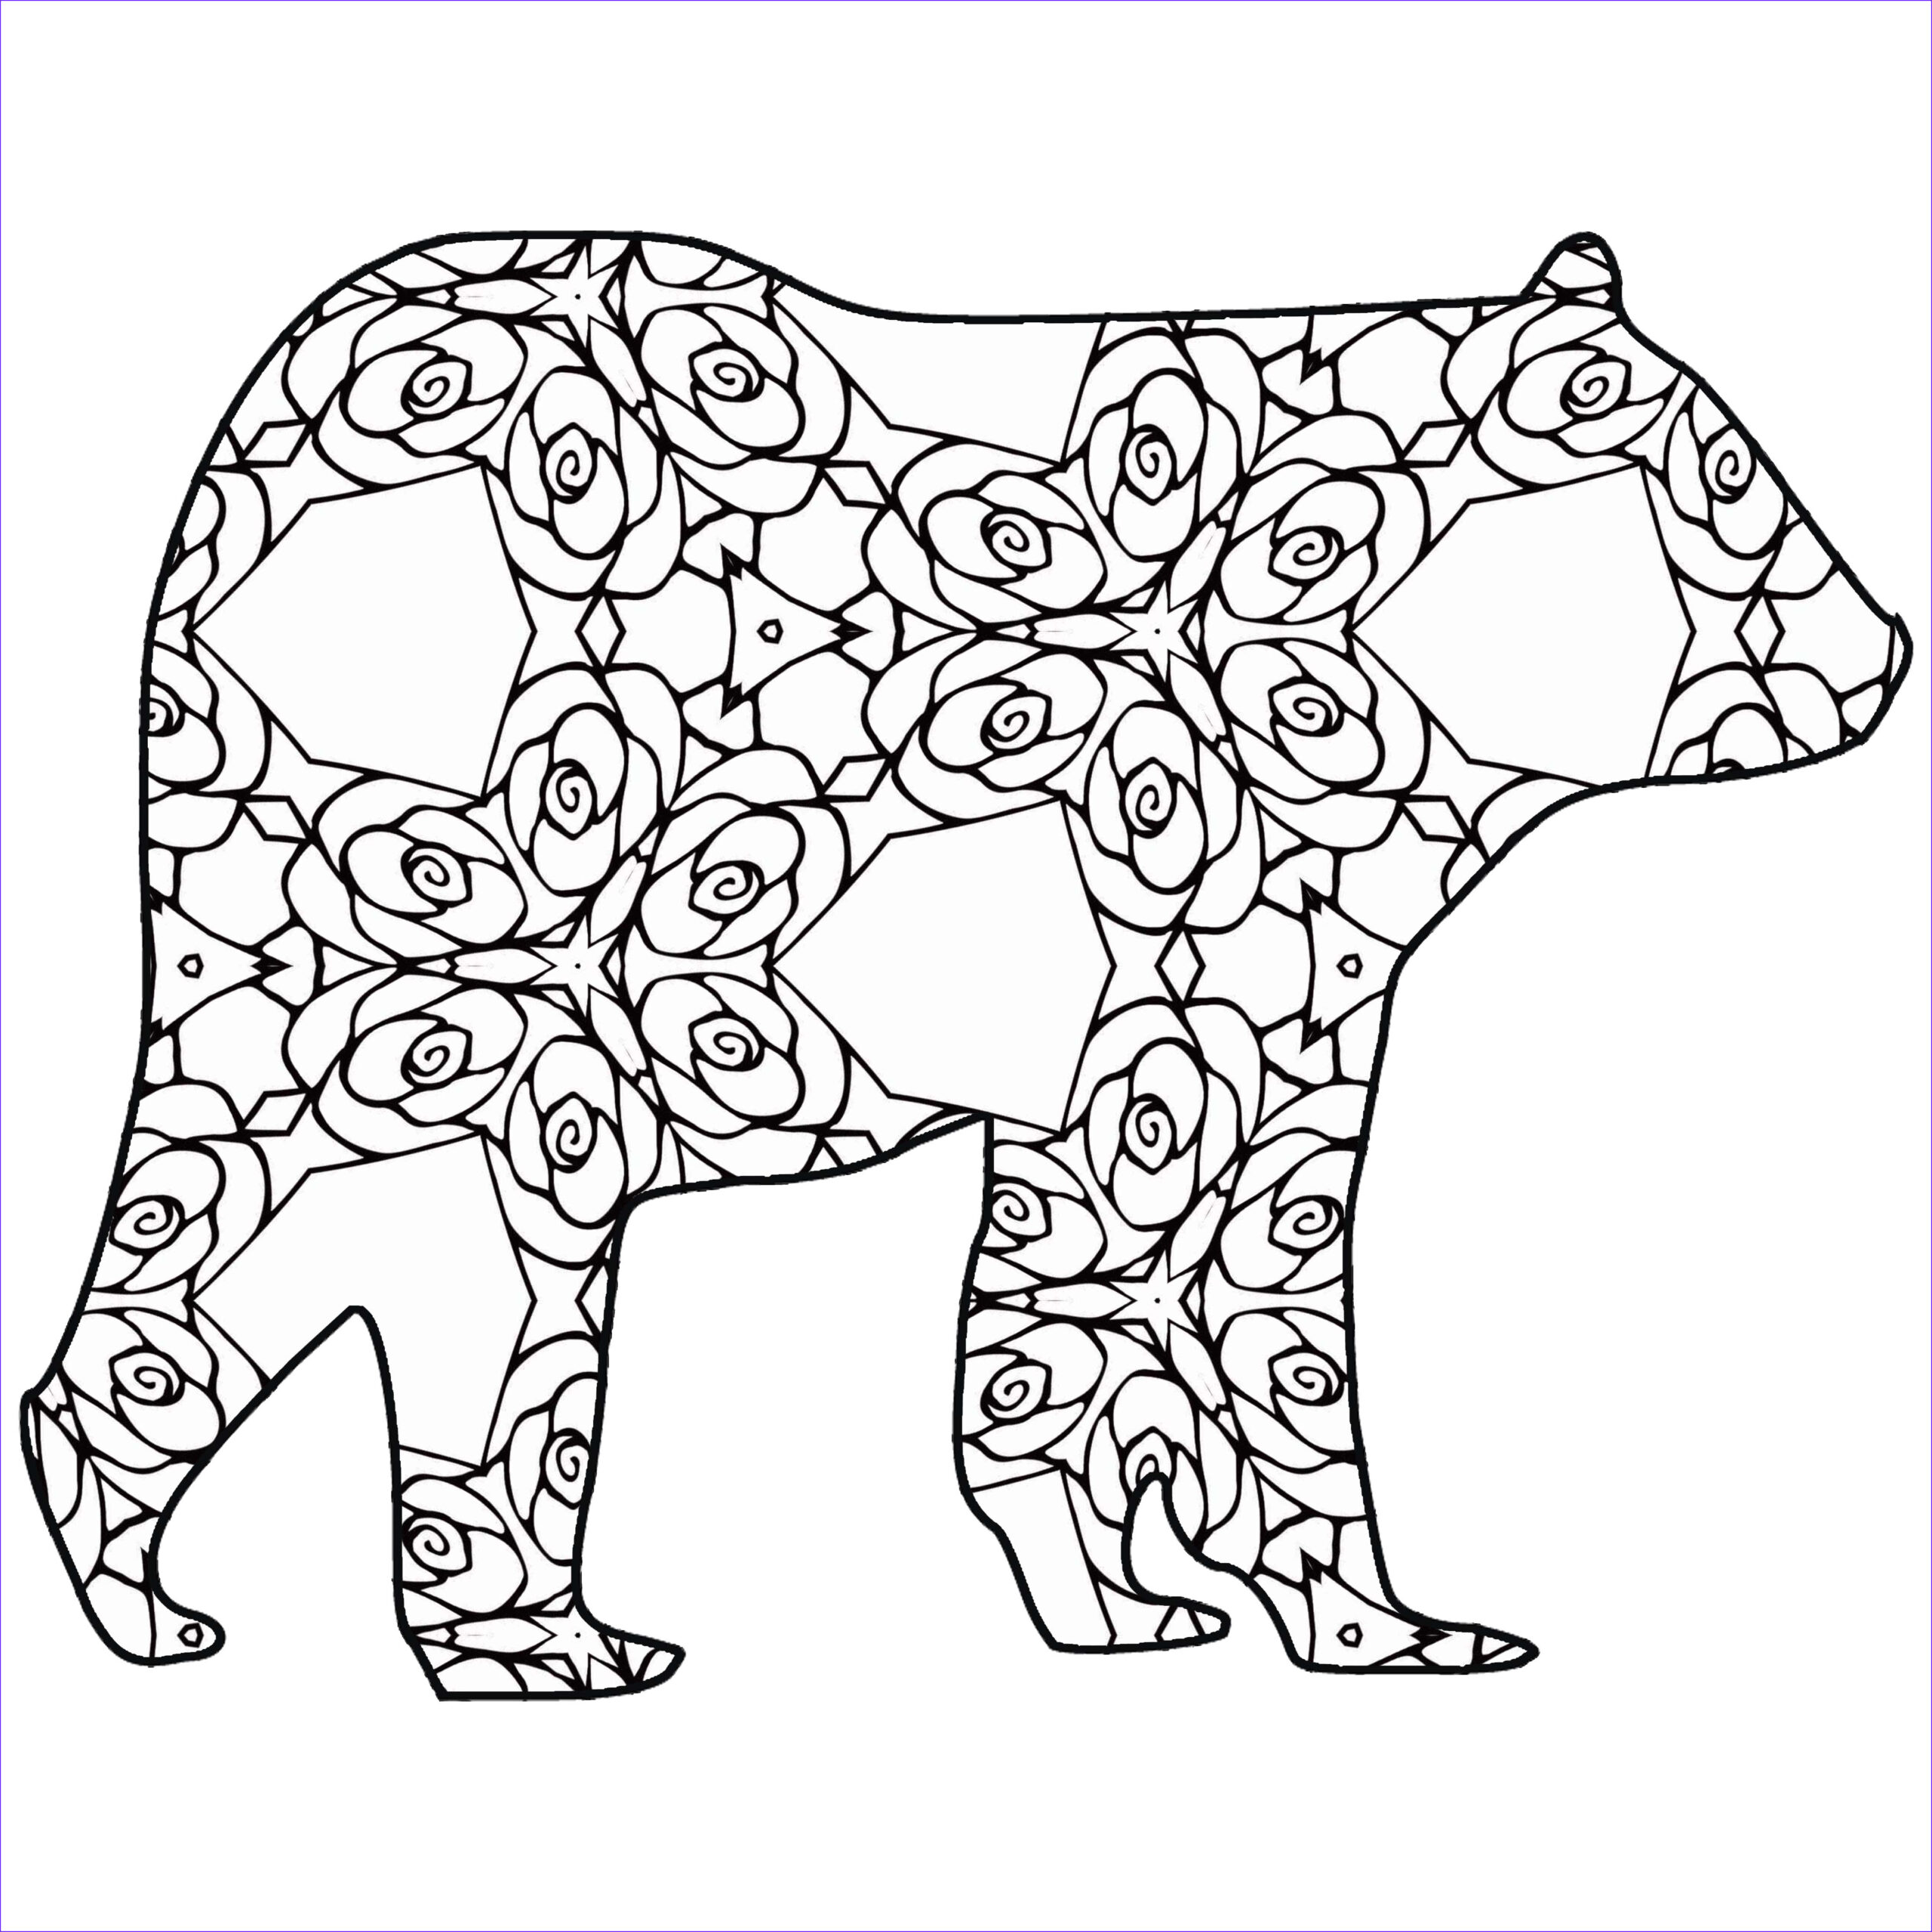 Coloring Pages Of Animals Beautiful Images 30 Free Printable Geometric Animal Coloring Pages